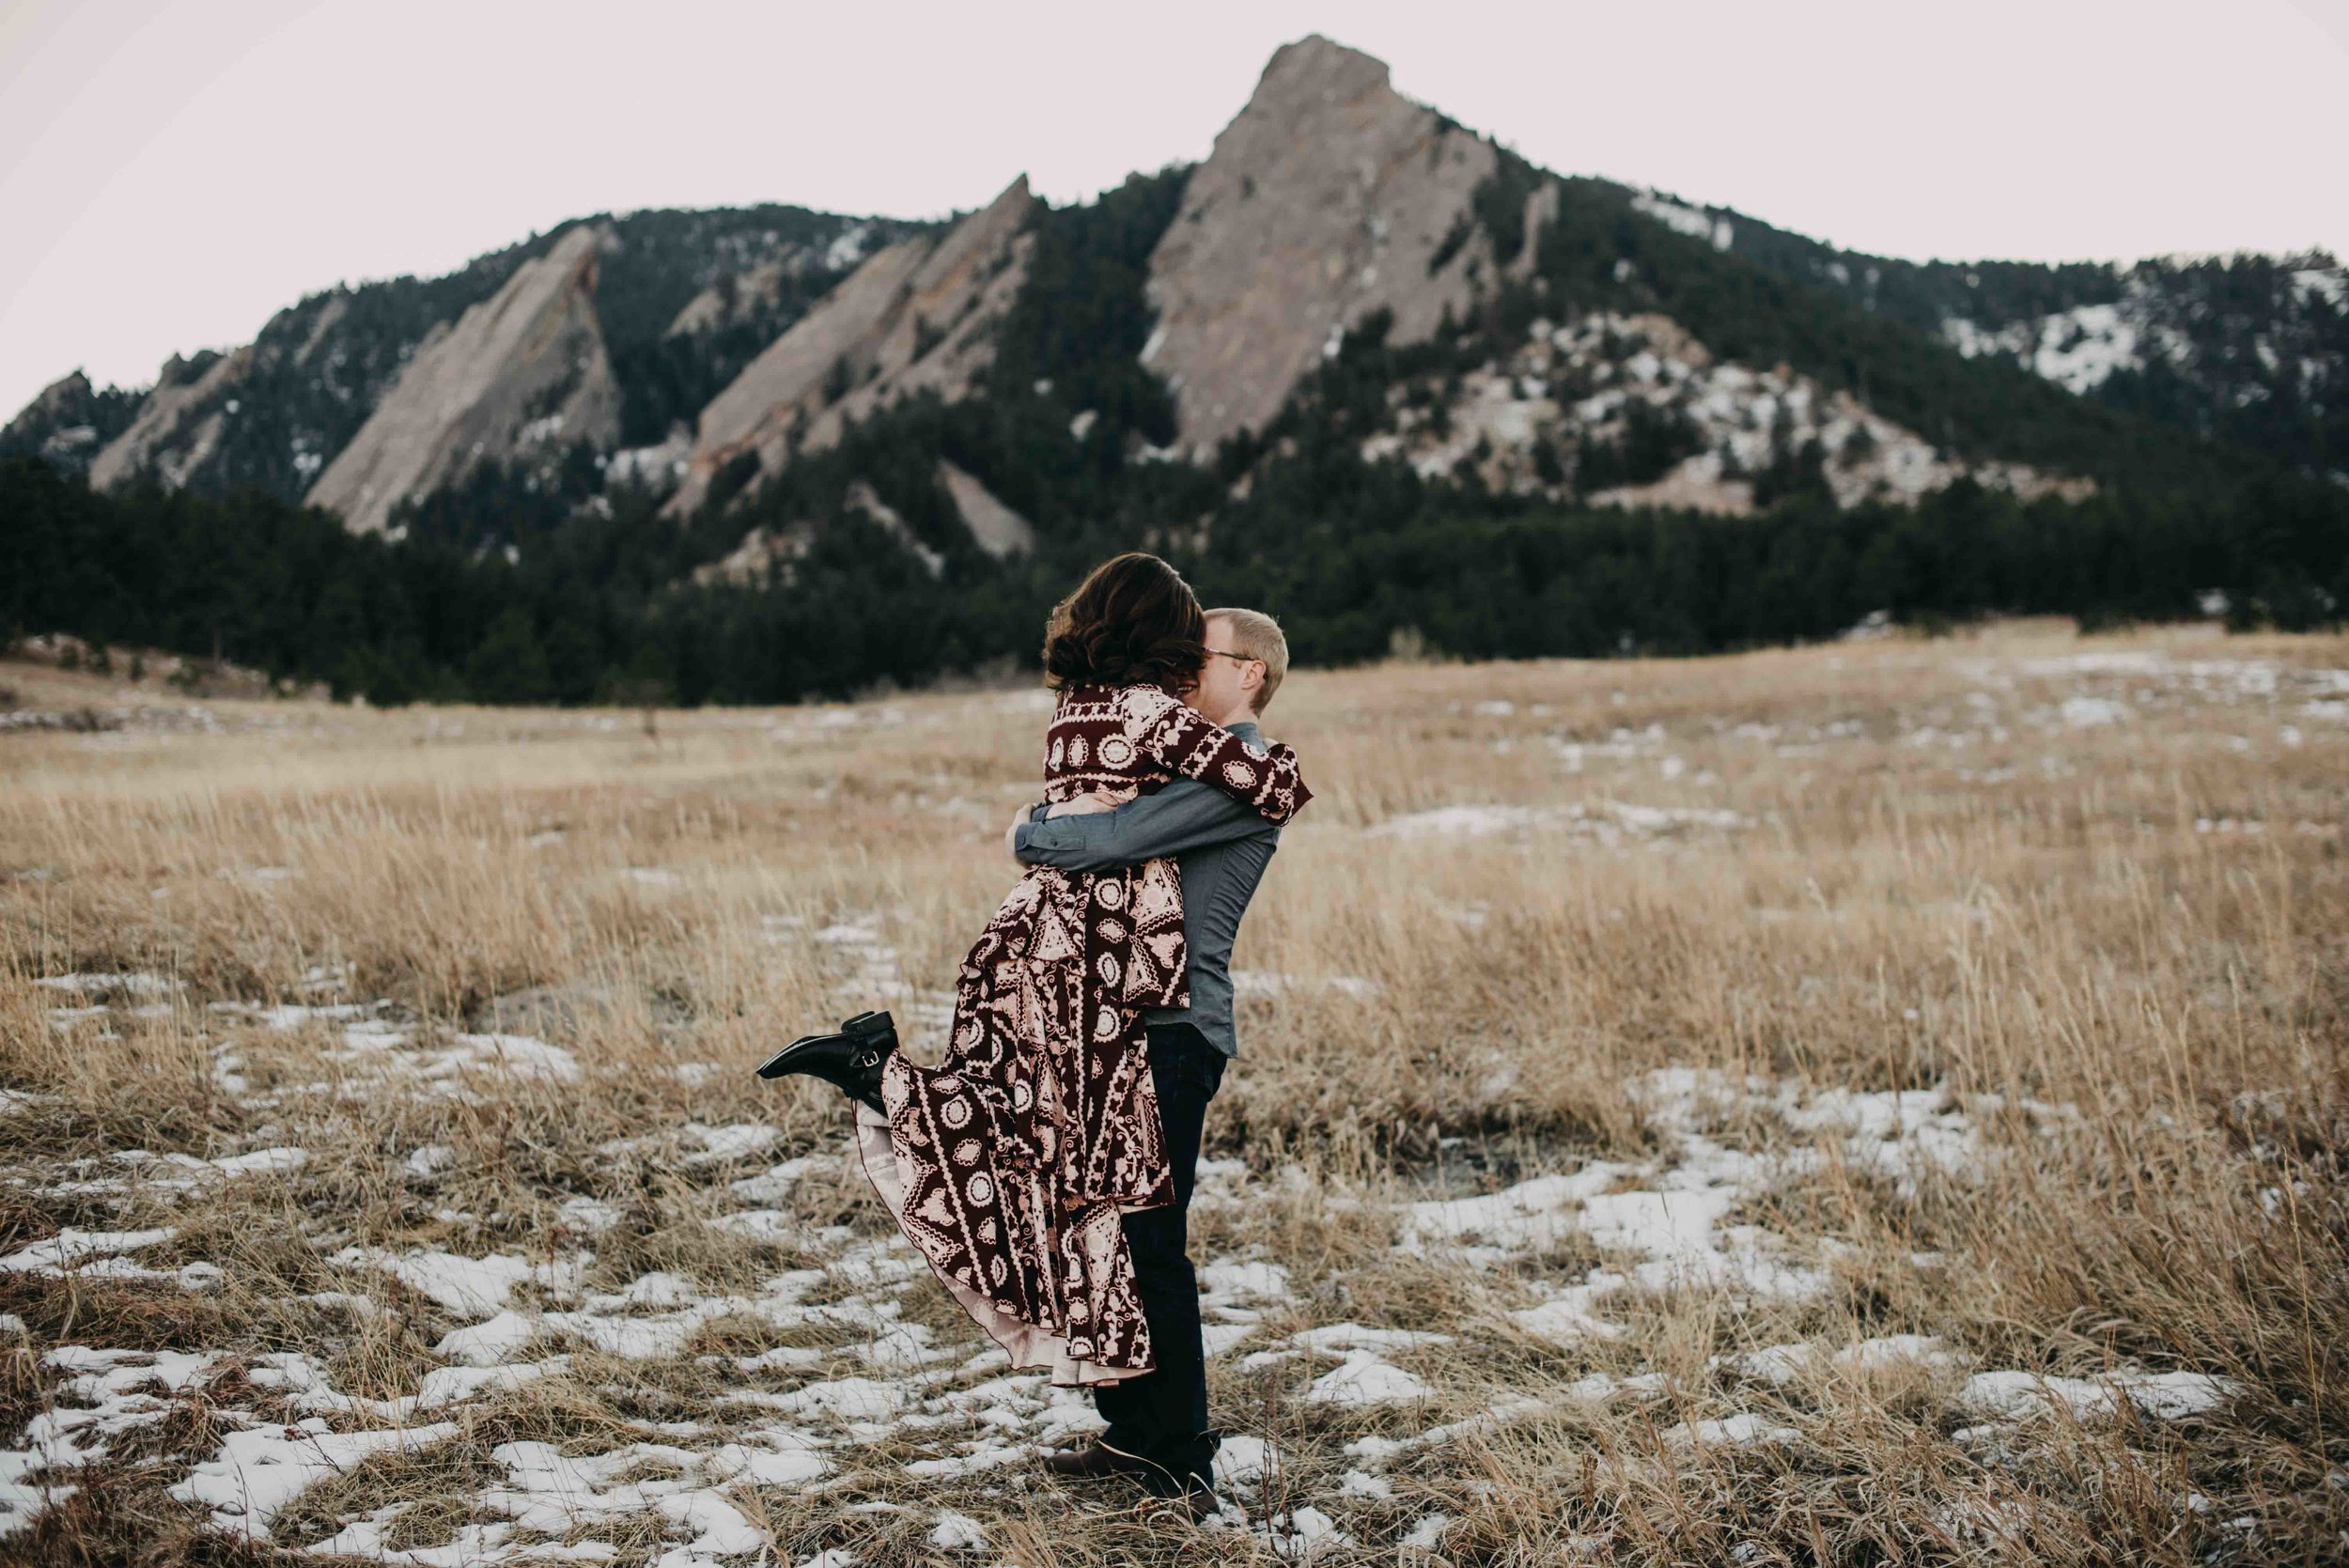 Trinity and Peter embracing in front of the flatirons during their Chautauqua Engagement Session.